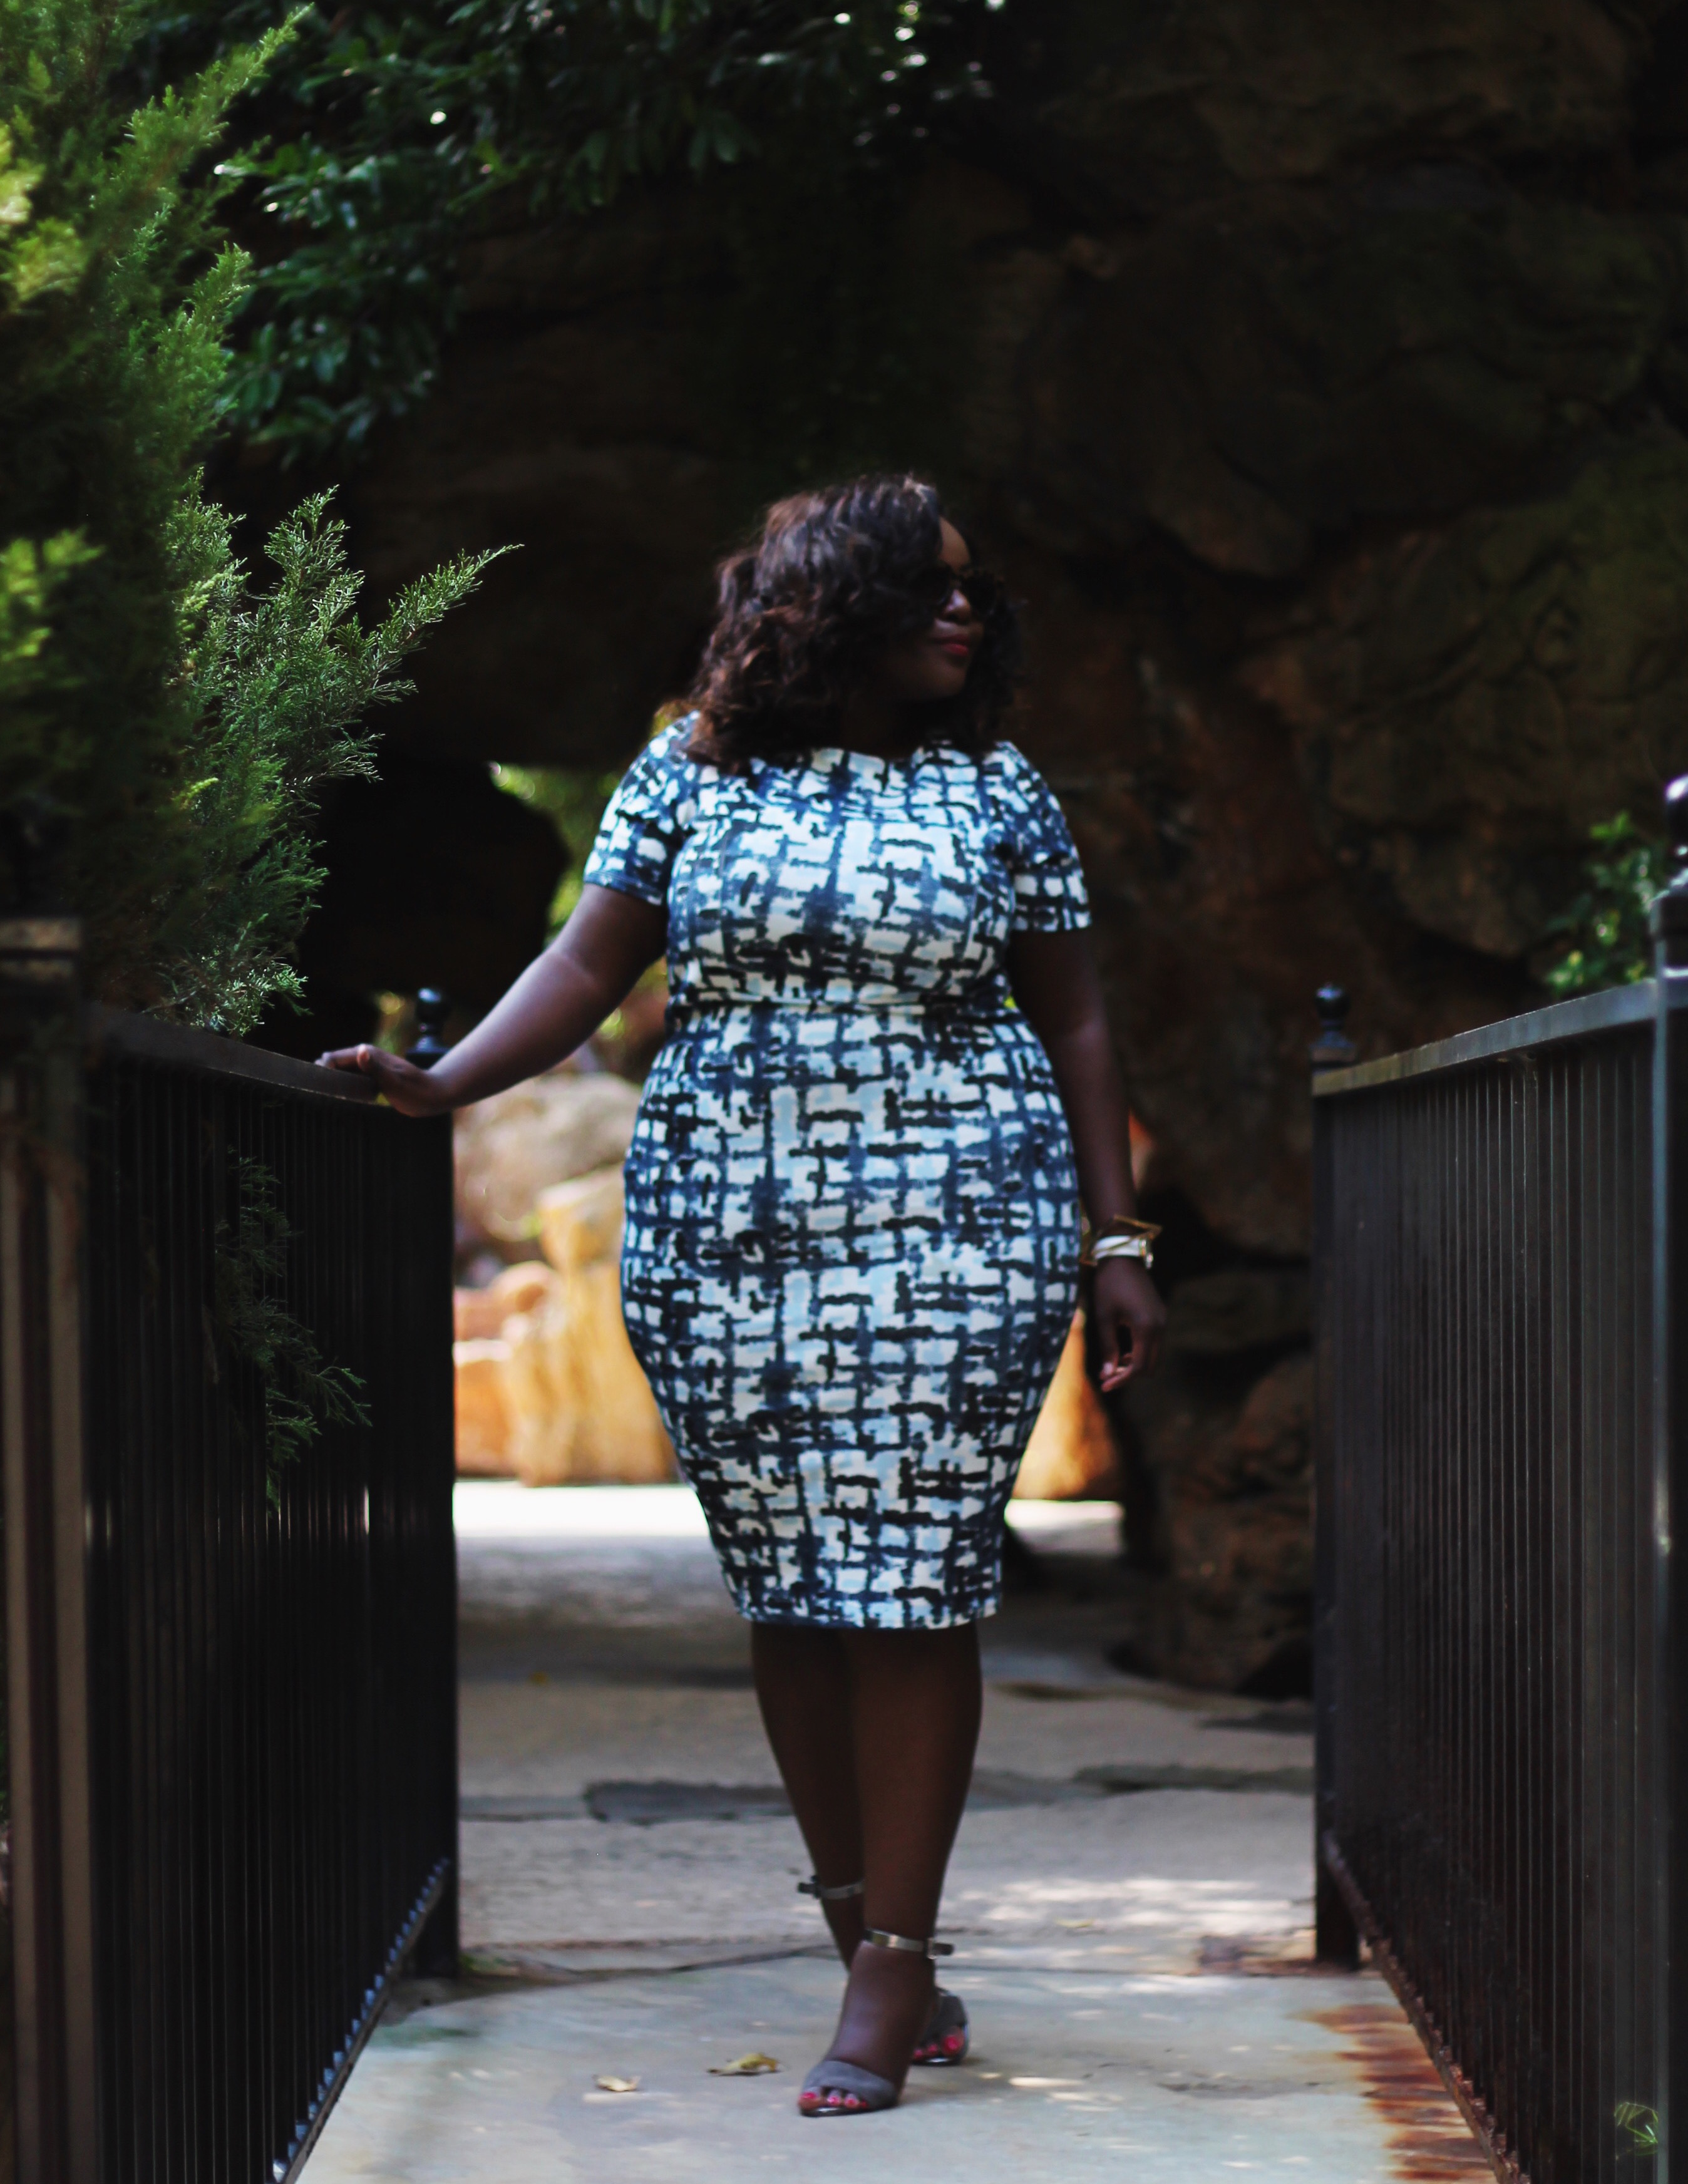 asos curve bloggers, beautiful curvy girls, curvy style dark skin fashion blogger curvy style blogger, dark skin beauty blogger, dark skin blogger, houston blogger, inspiration for 2016, inspiring bloggers and blogs, new years resolutions, plus size blogger, quotes for 2016, relationship advice blogs, rules to live by in the new year, texas blogger, travel blogger, ugandan blogger, ugandan fashionista, ugandan style blogger, african print ankara skirt styles, where to get african print clothes in America and uk, exposure african crafts in kampala uganda, kyaligonza kampala african material